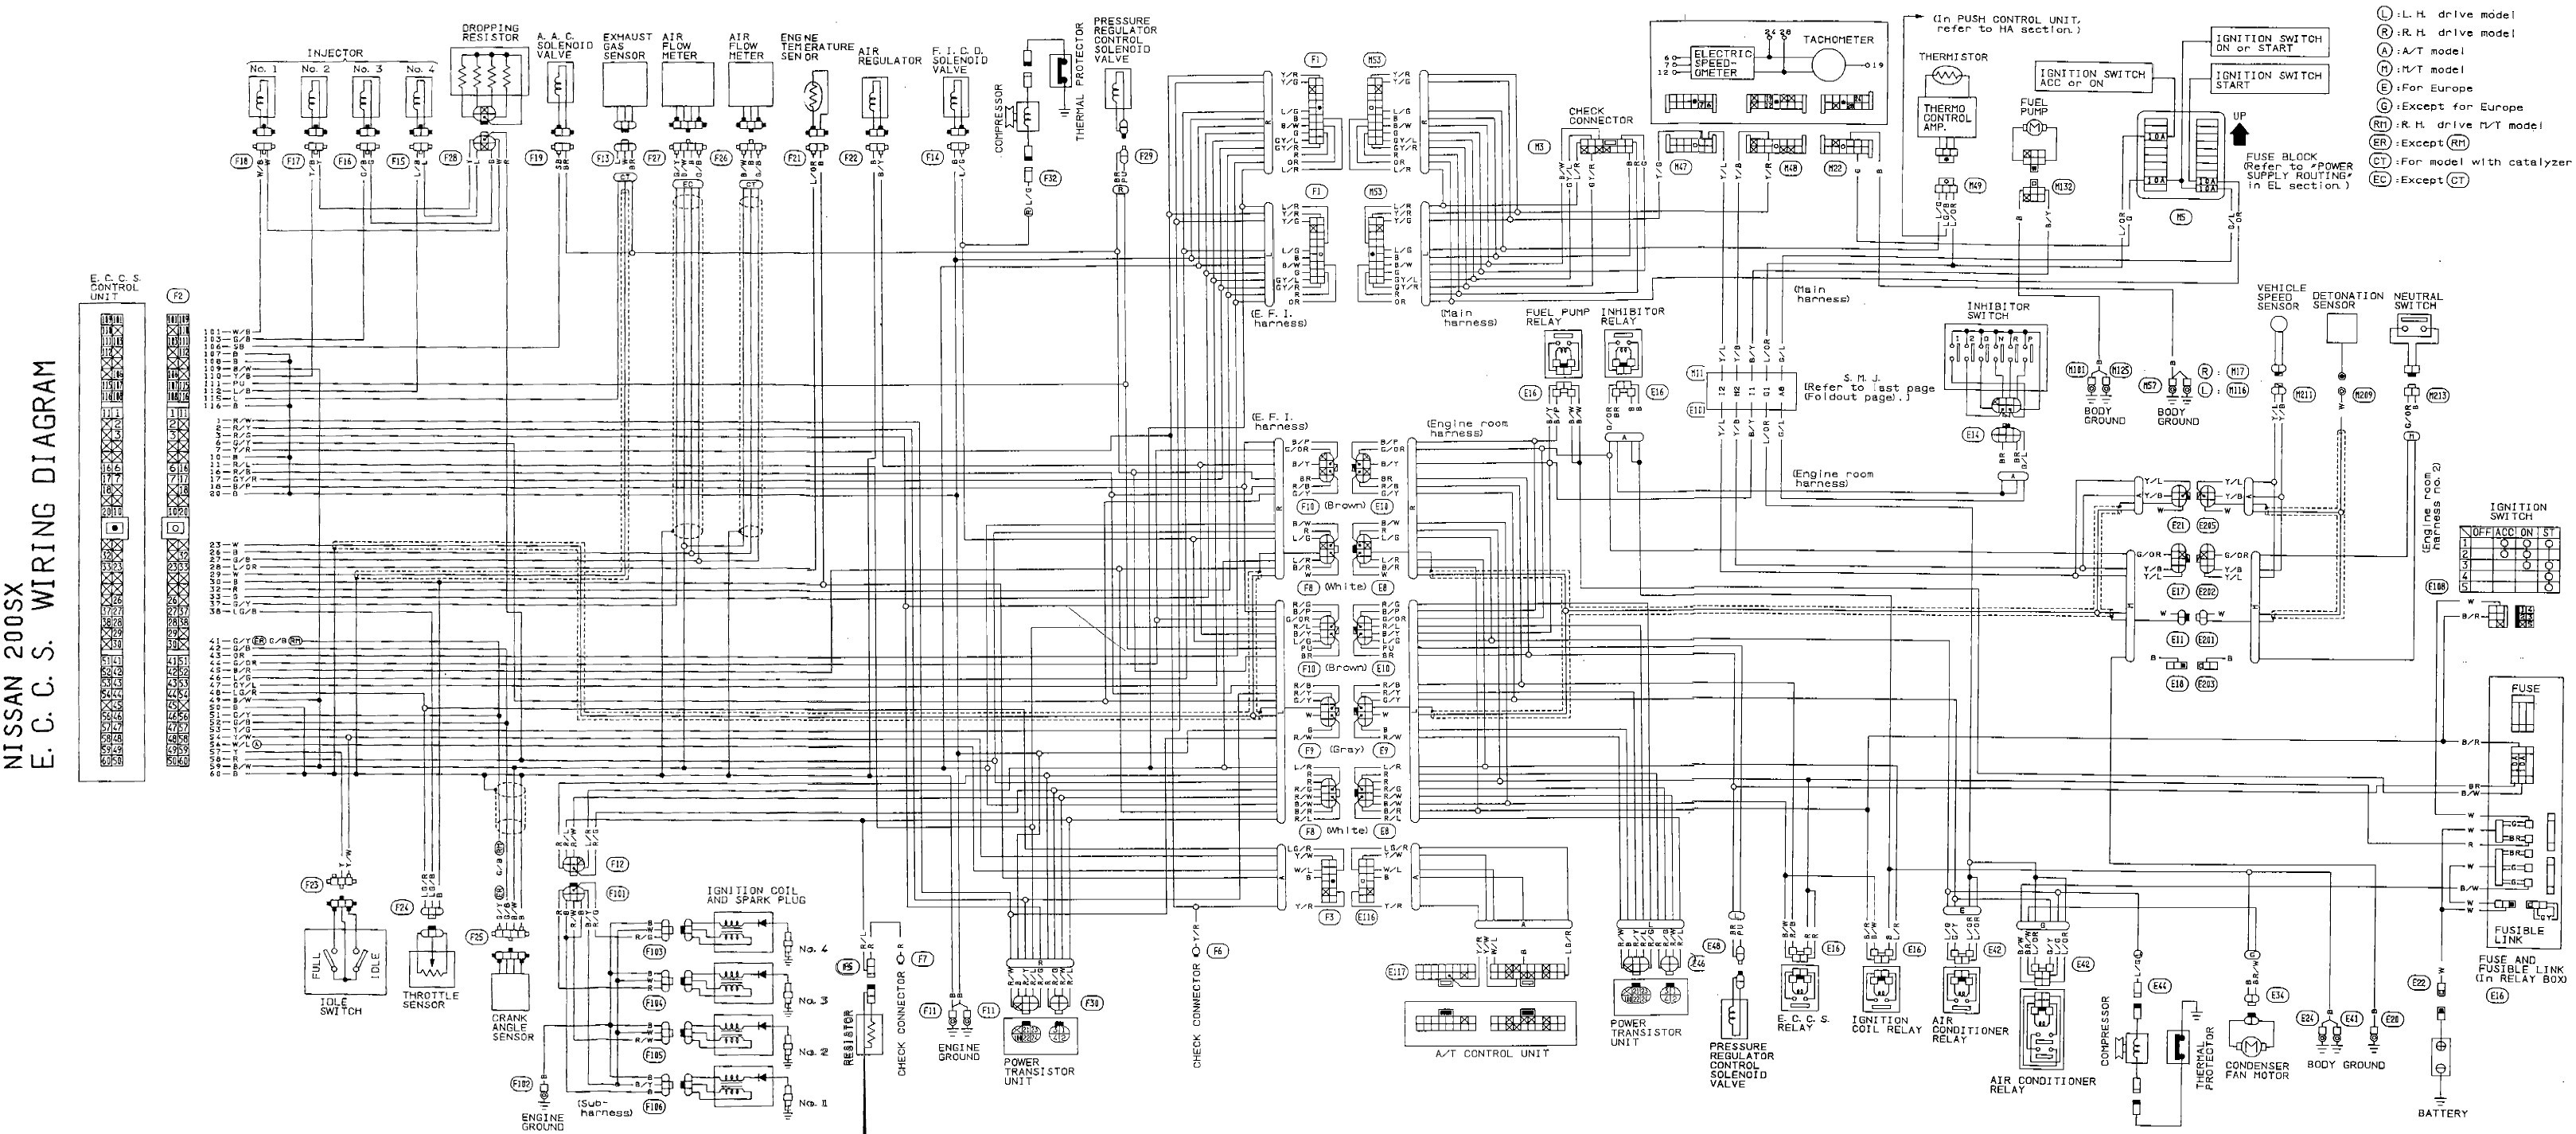 1986 nissan 200sx engine diagram wiring schematic circuit wiring rh  thewiringdiagram today 2011 Nissan Altima Oil Filter 2011 Nissan Altima Oil  Type